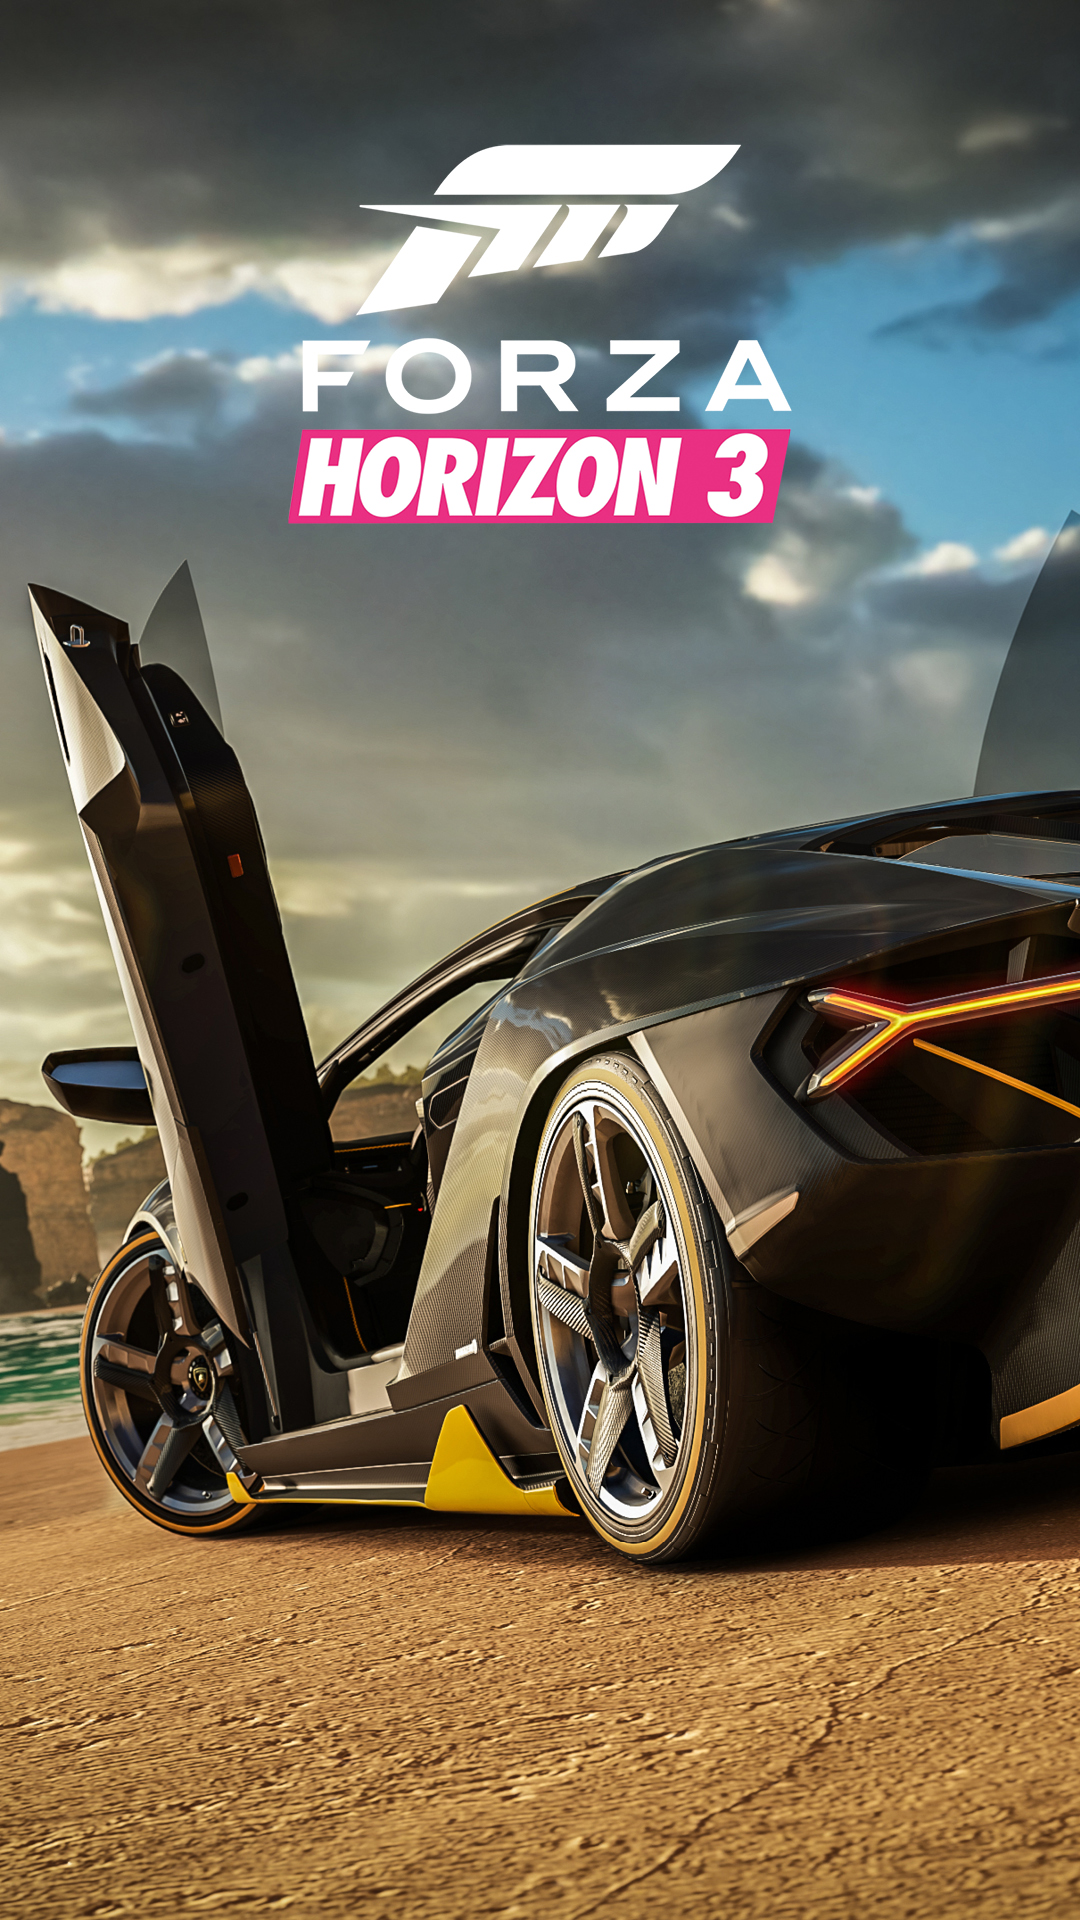 Forza Horizon 3 Wallpaper Hd Fondos De Forza Horizon 3 Wallpapers